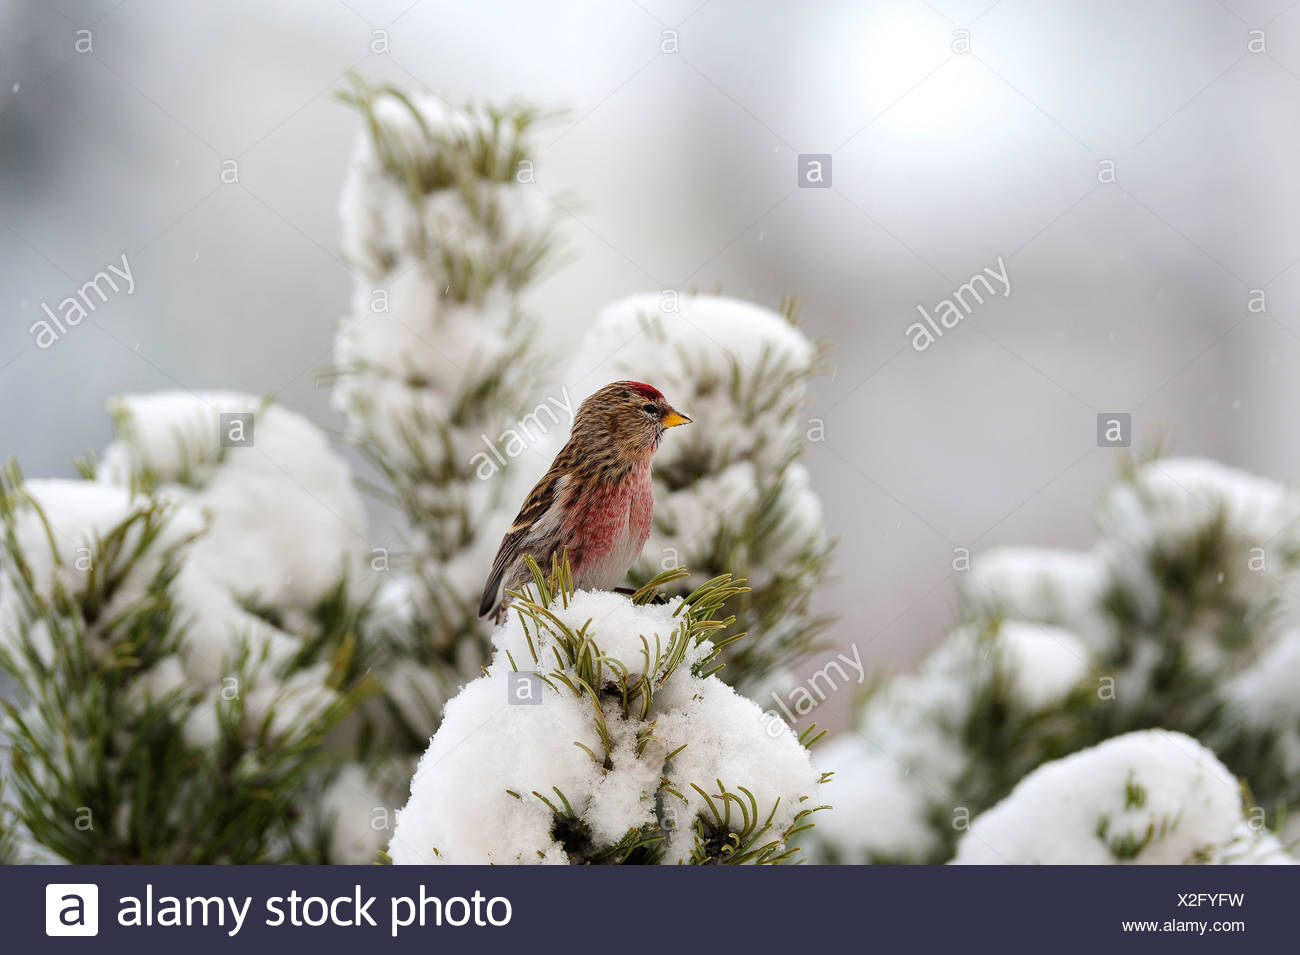 Side view of redpoll in snow against blurred background - Stock Image